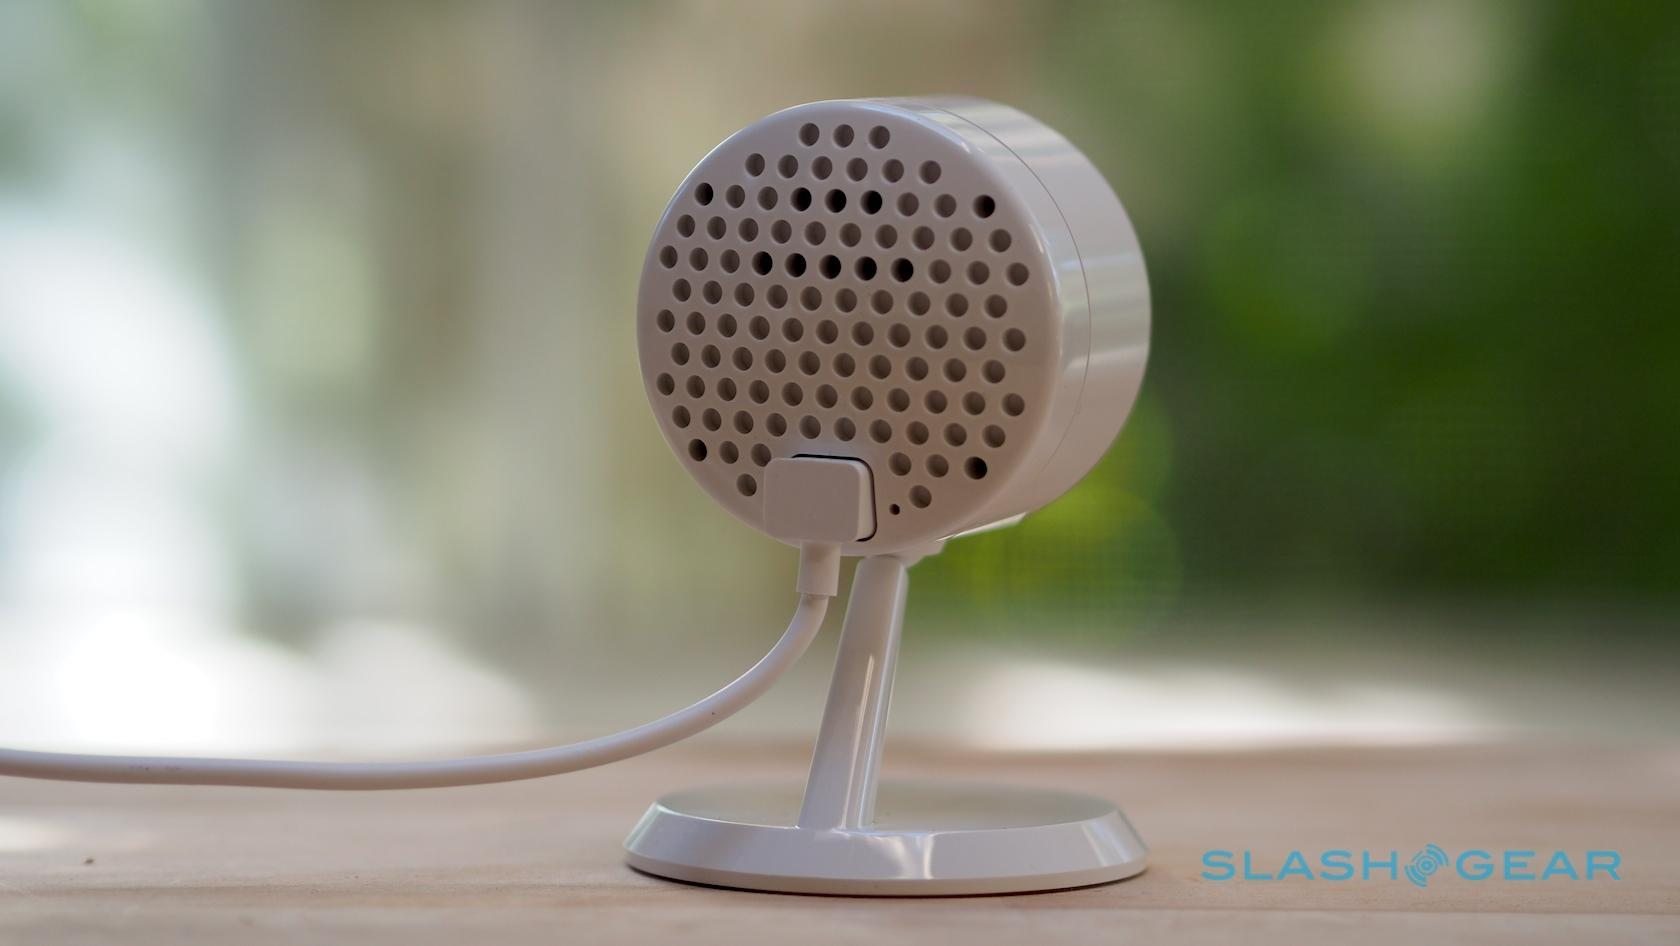 Amazon Cloud Cam Review: Alexa will see you now - SlashGear